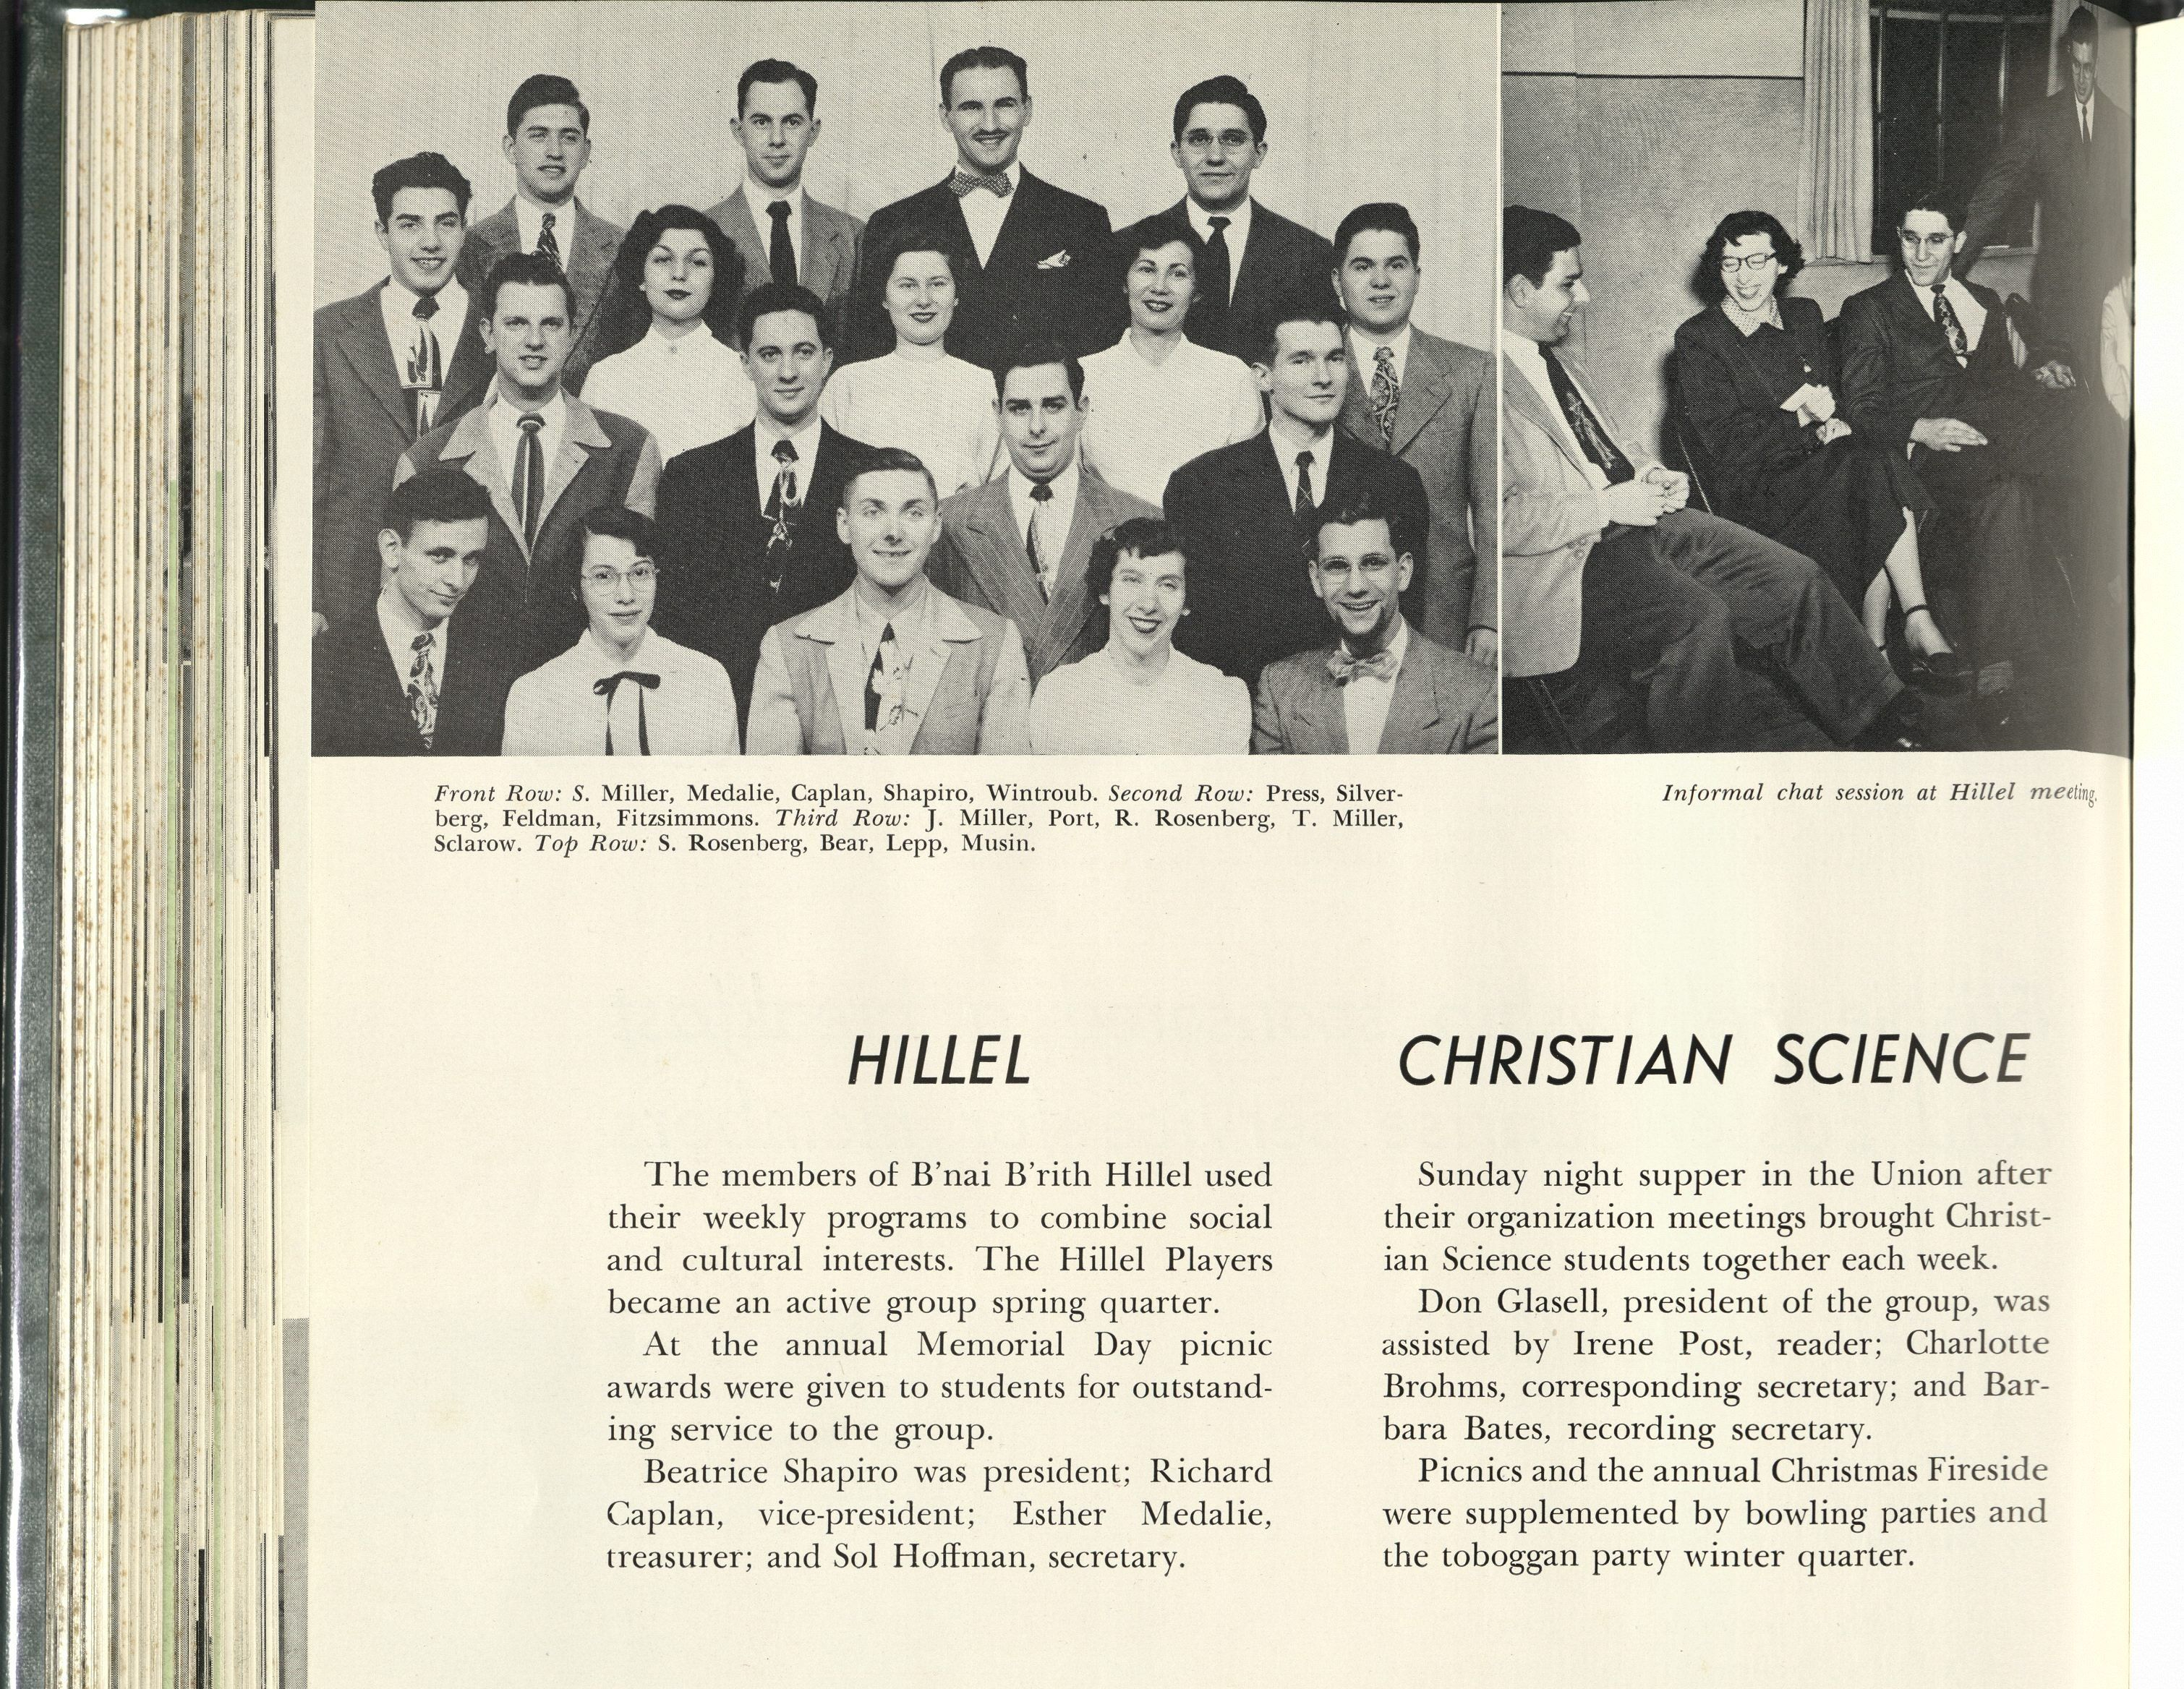 "Two images feature group pictures of the Hillel Club. Text reads: ""Hillel. The members of B'nai B'rith Hillel used their weekly programs to combine social and cultural interests. The Hillel Players became an active group spring quarter. At the annual Memorial Day picnic awards were given to students for outstanding service to the group. Beatrice Shapiro was president; Richard Caplan, vice-president; Esther Medalie, treasurer; and Sol Hoffman, secretary."